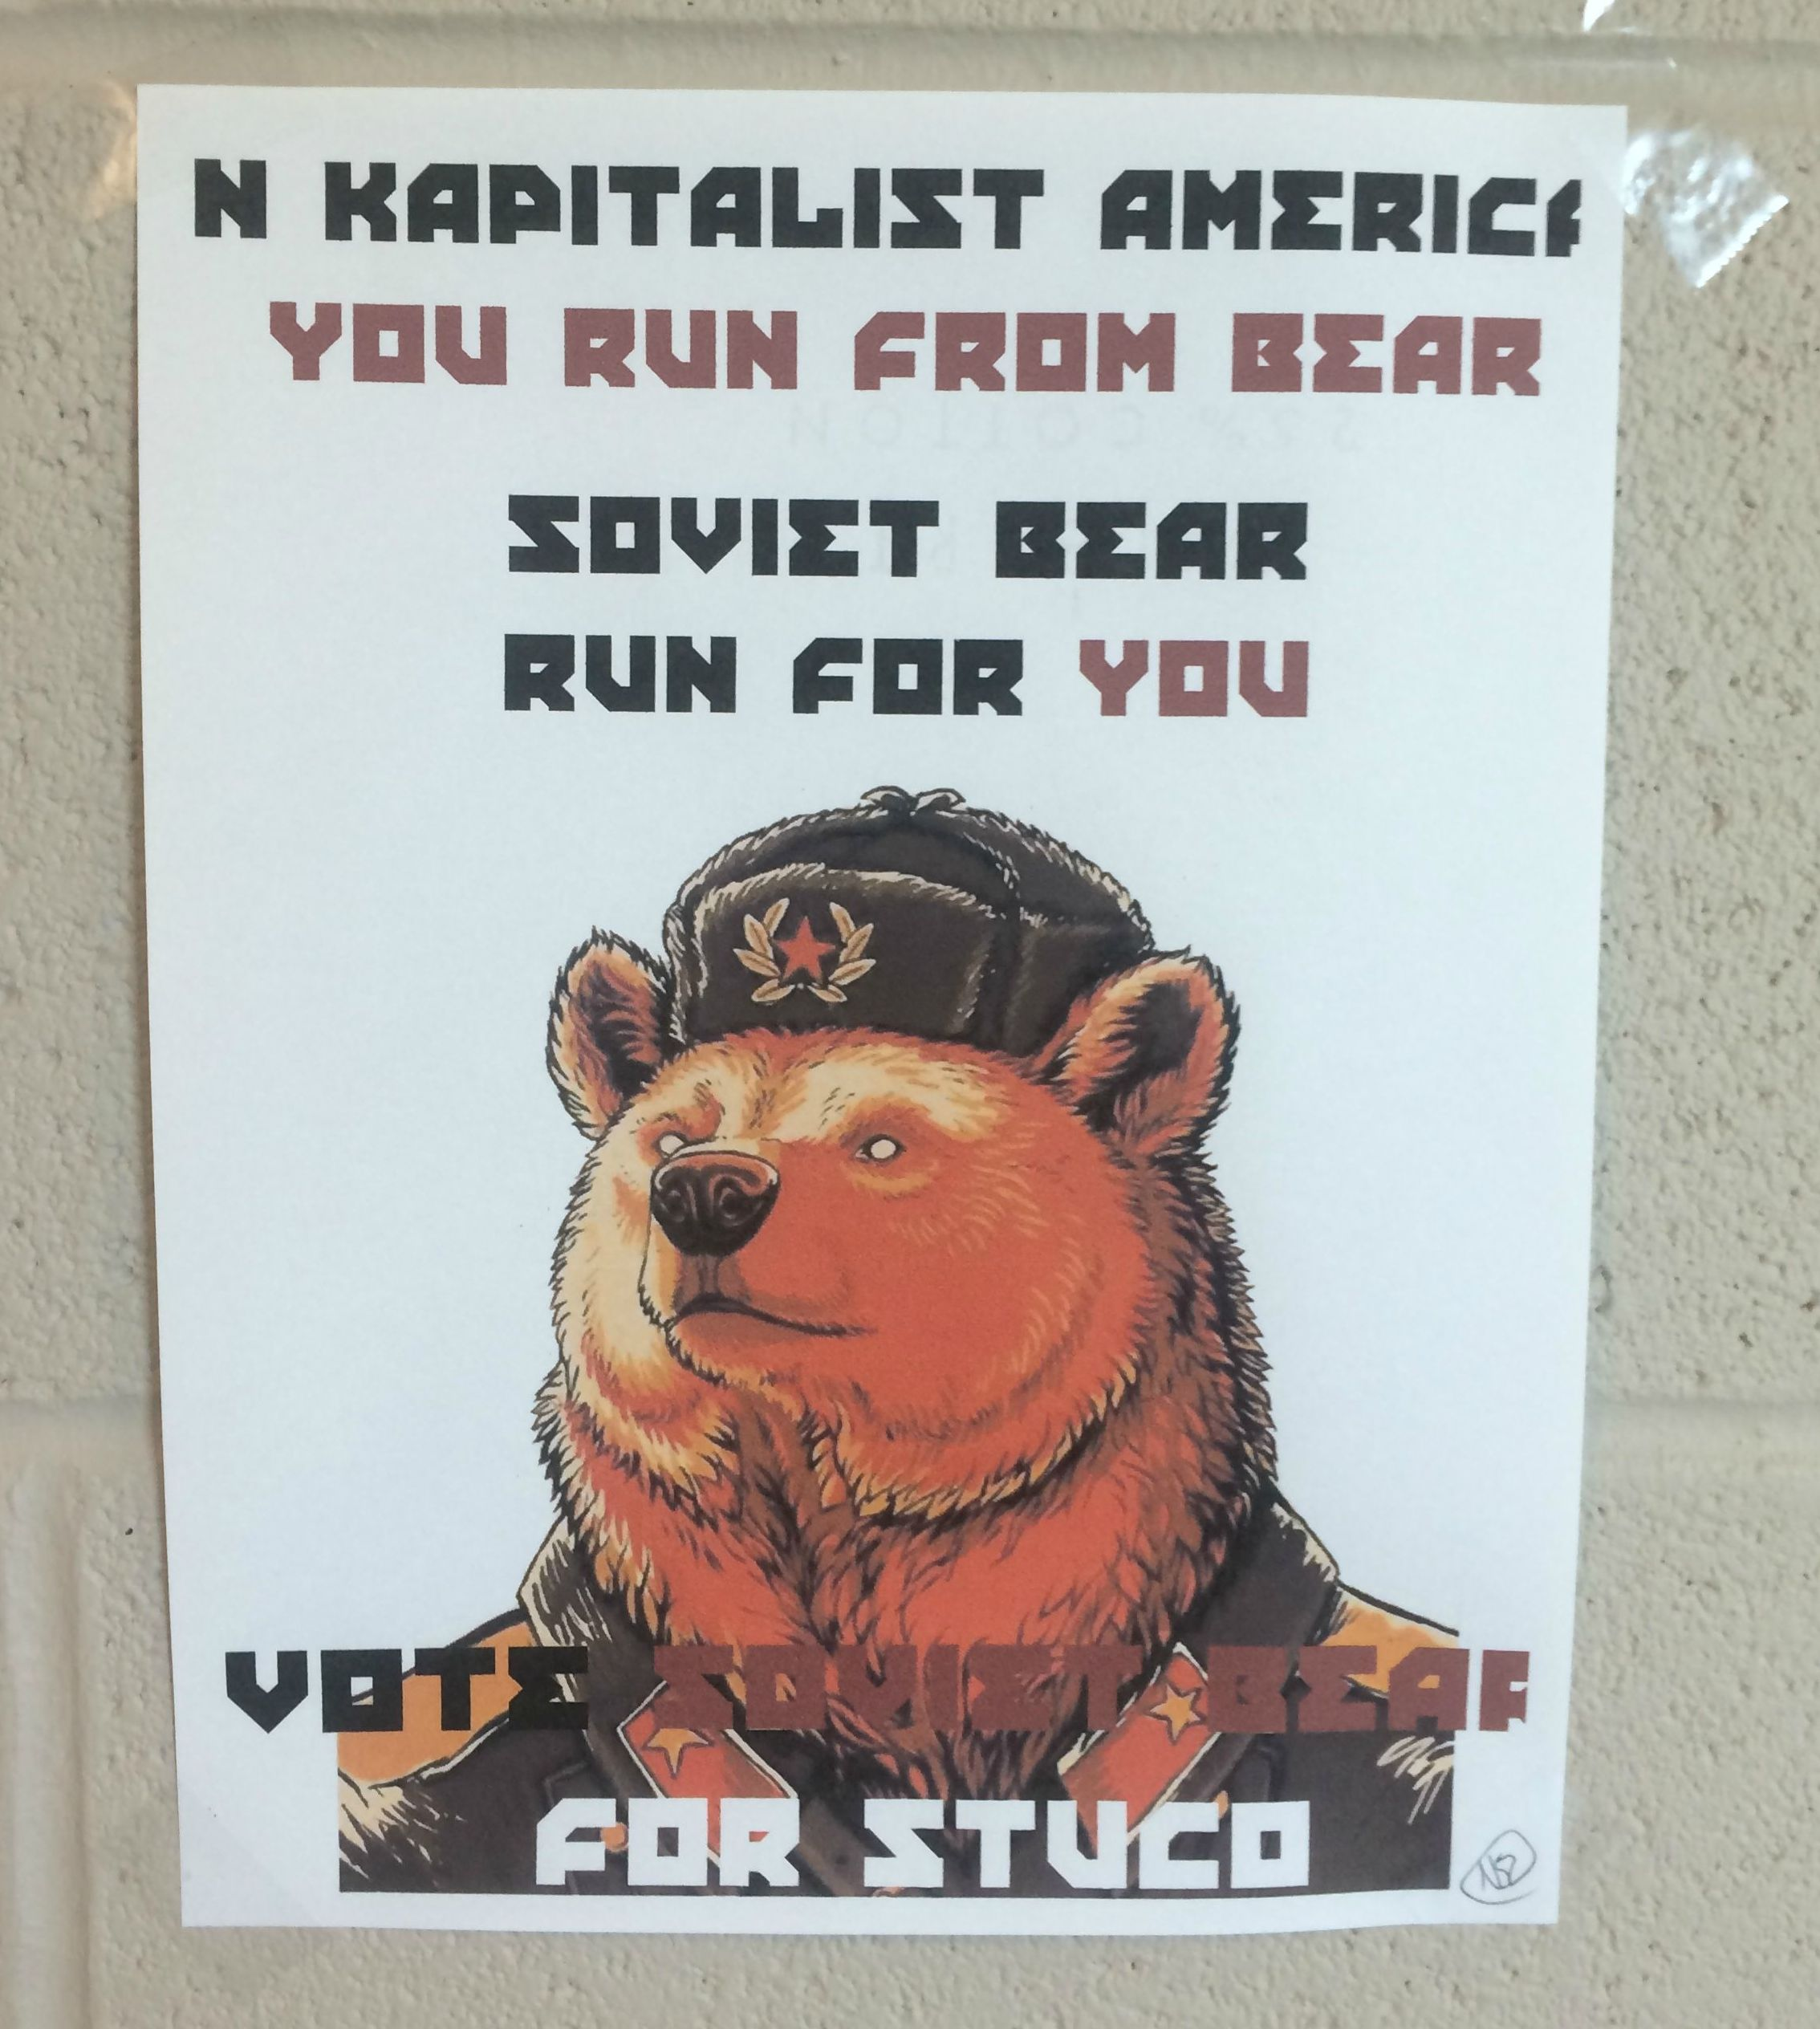 Student council elections are in season, and at one high school, a giant Soviet Bear is poised for glorious victory.